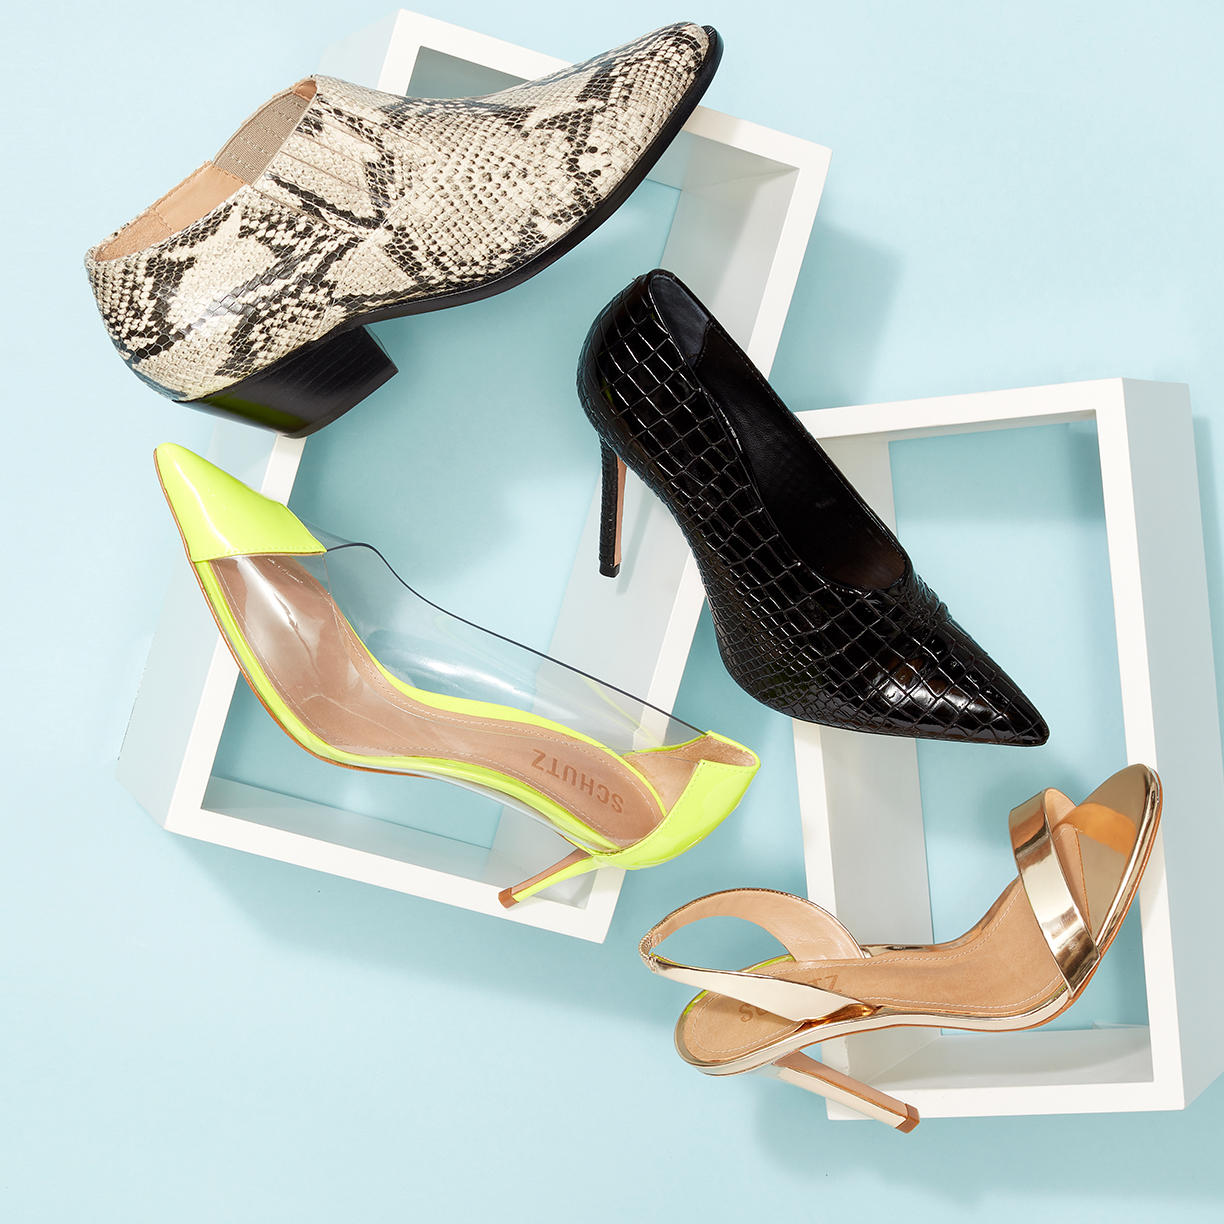 Schutz Women's Shoes Up to 60% Off